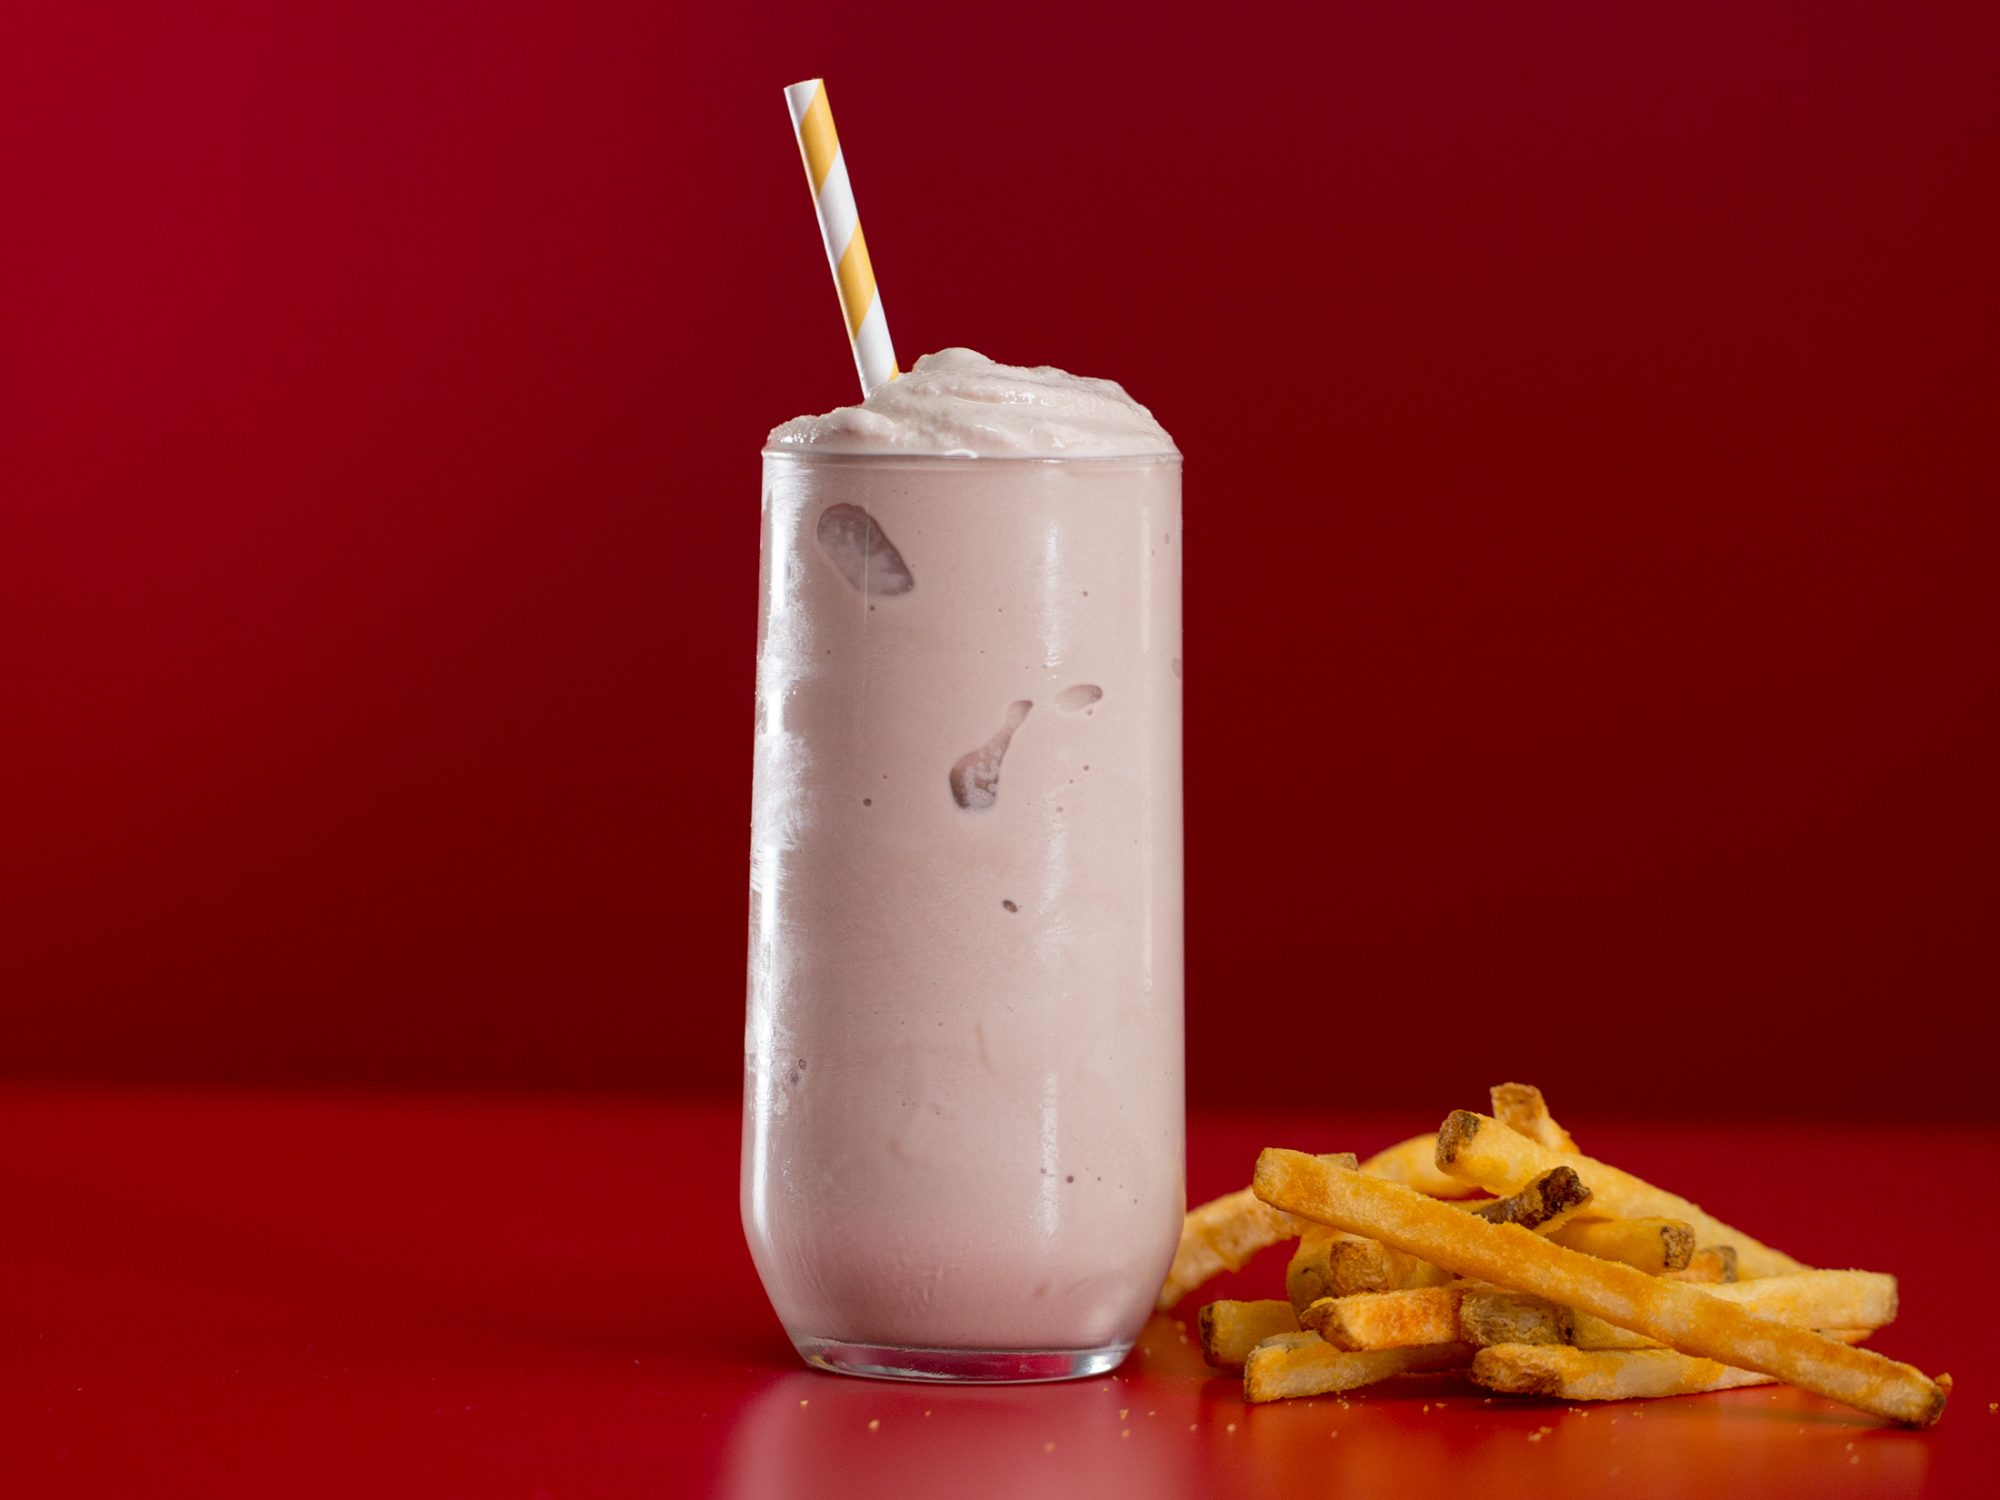 DIY Wendy's Frosty image